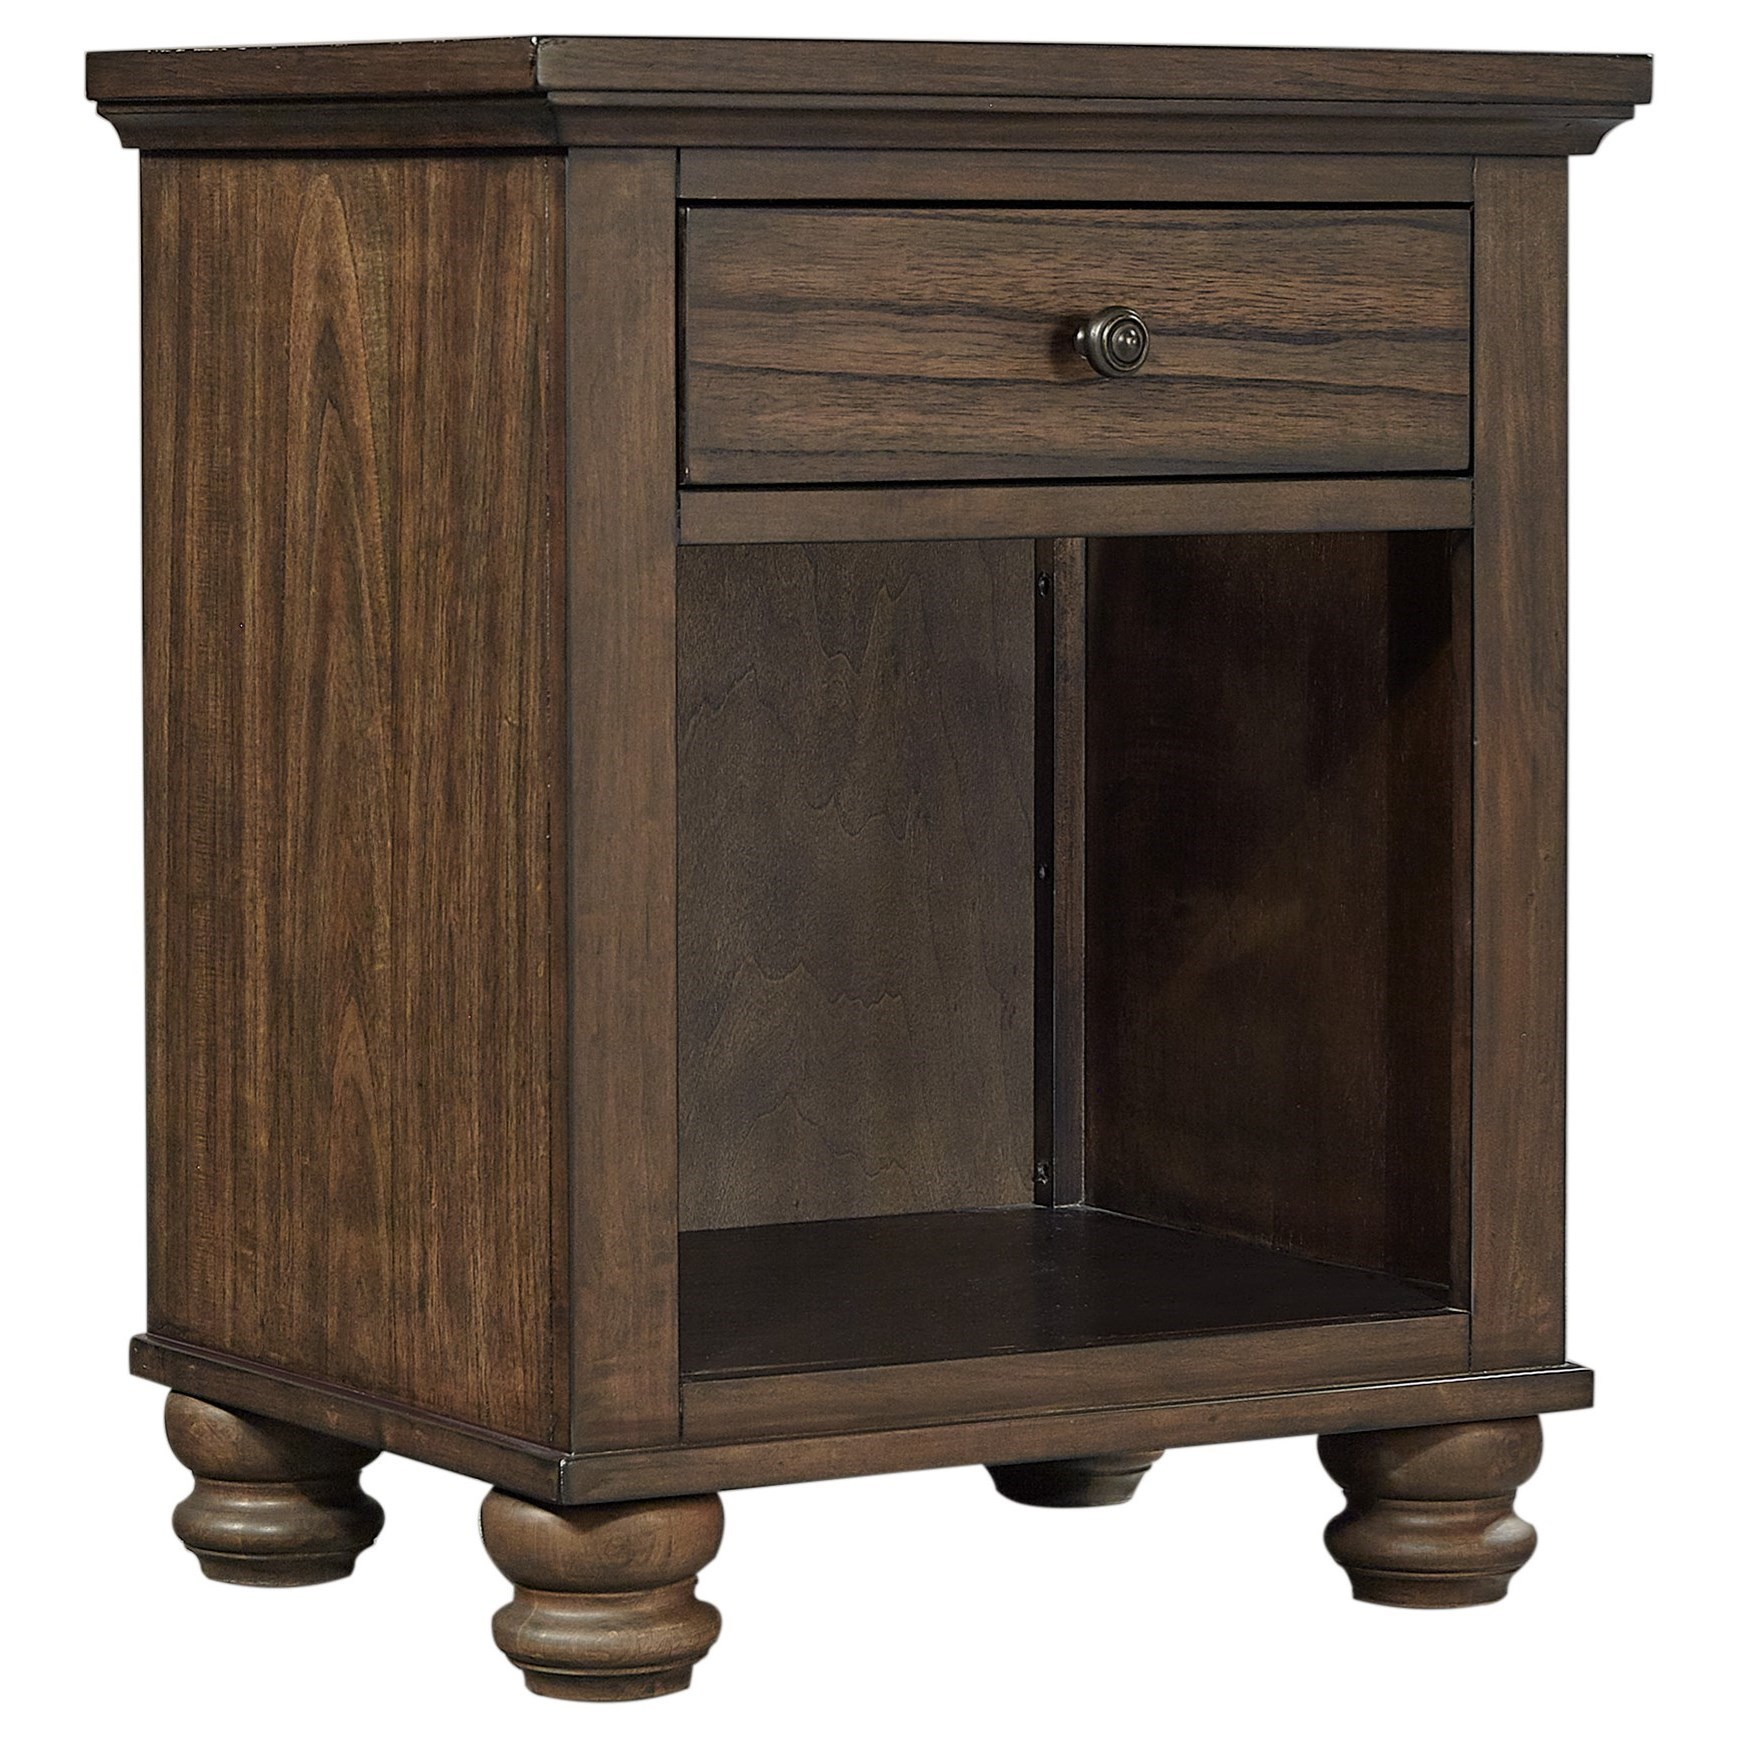 Hudson Valley 1 Drawer Nightstand by Aspenhome at Walker's Furniture